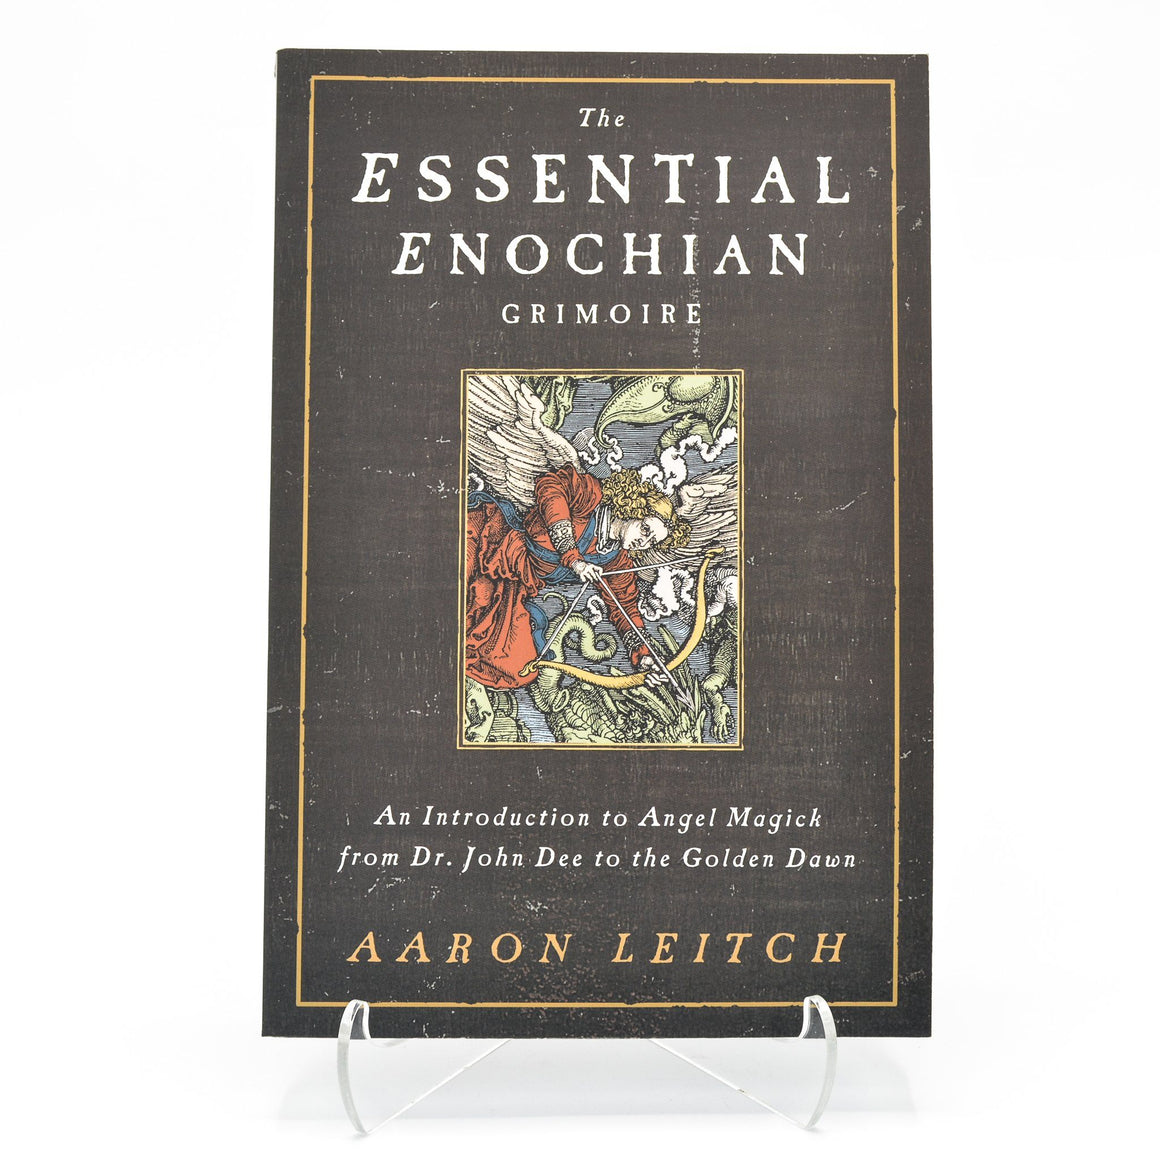 Essential Enochian Grimoire, The, Aaron Leitch